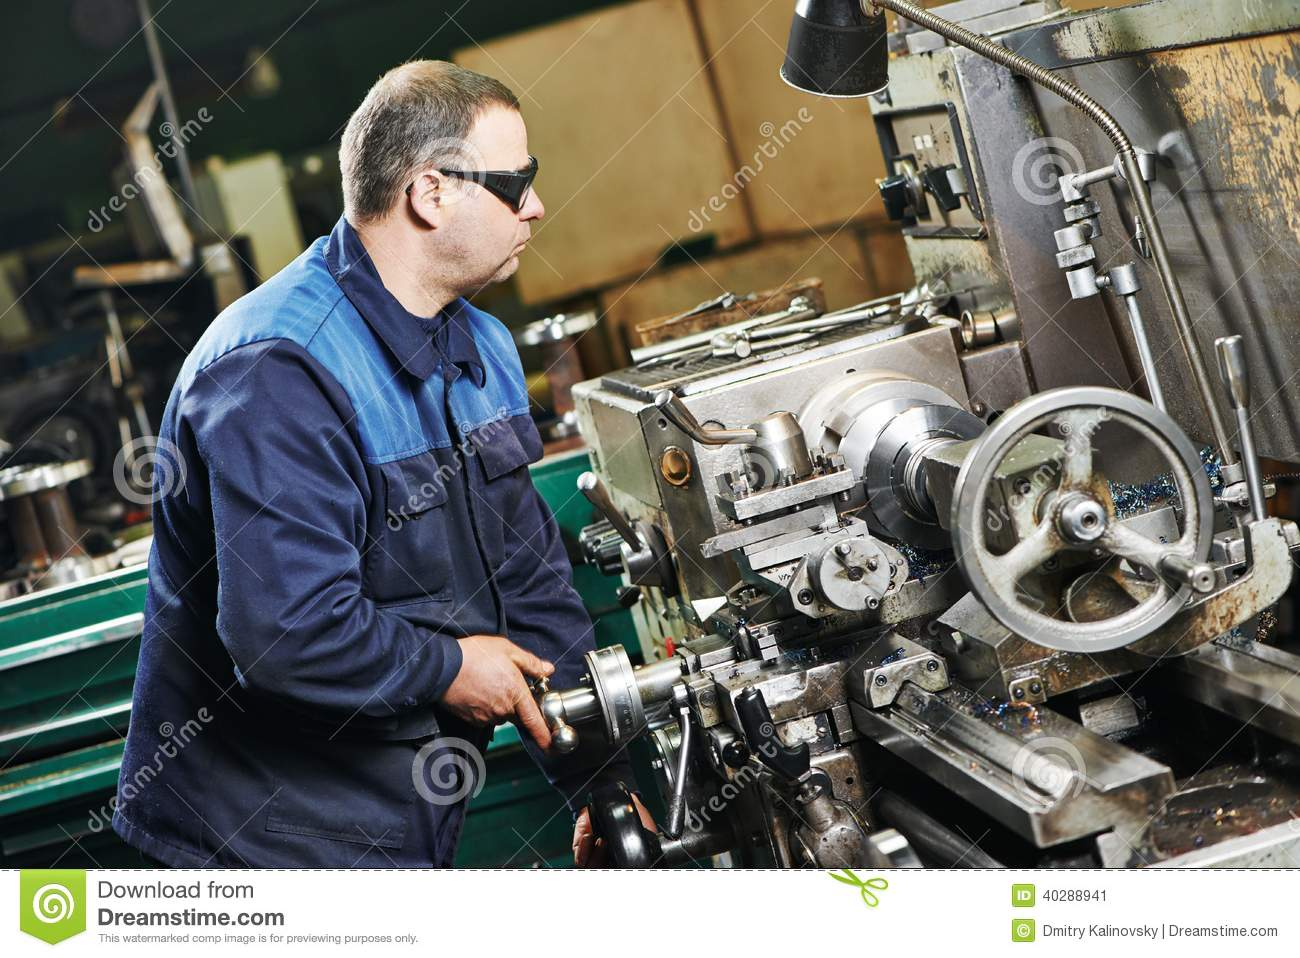 an analysis of the work of a machine operator